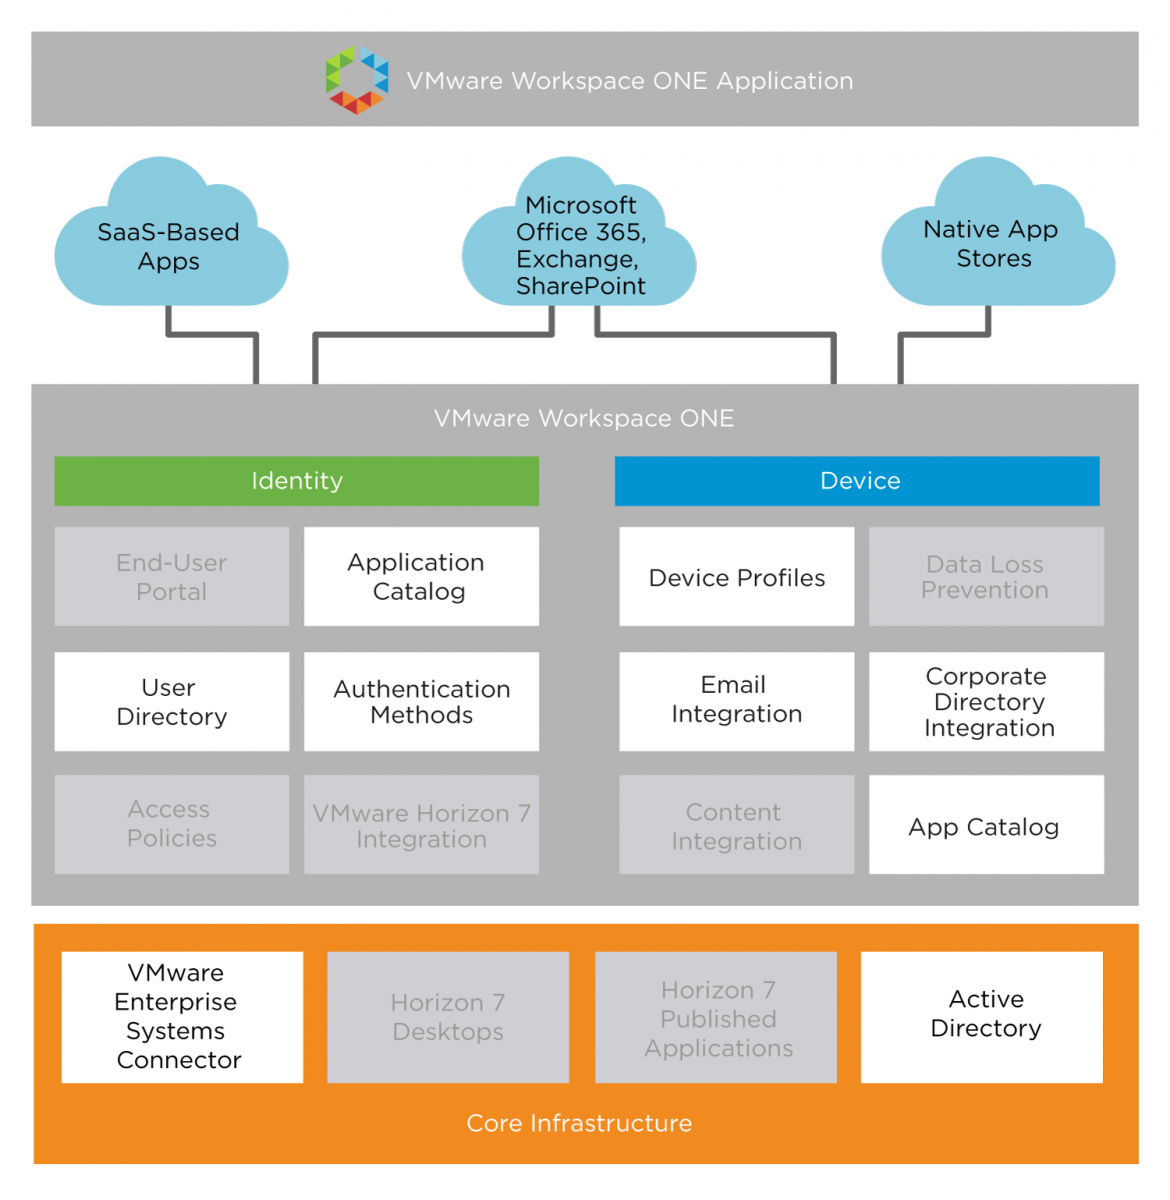 Vmware workspace one reference architecture for saas deployments mobile device management service blueprint malvernweather Gallery